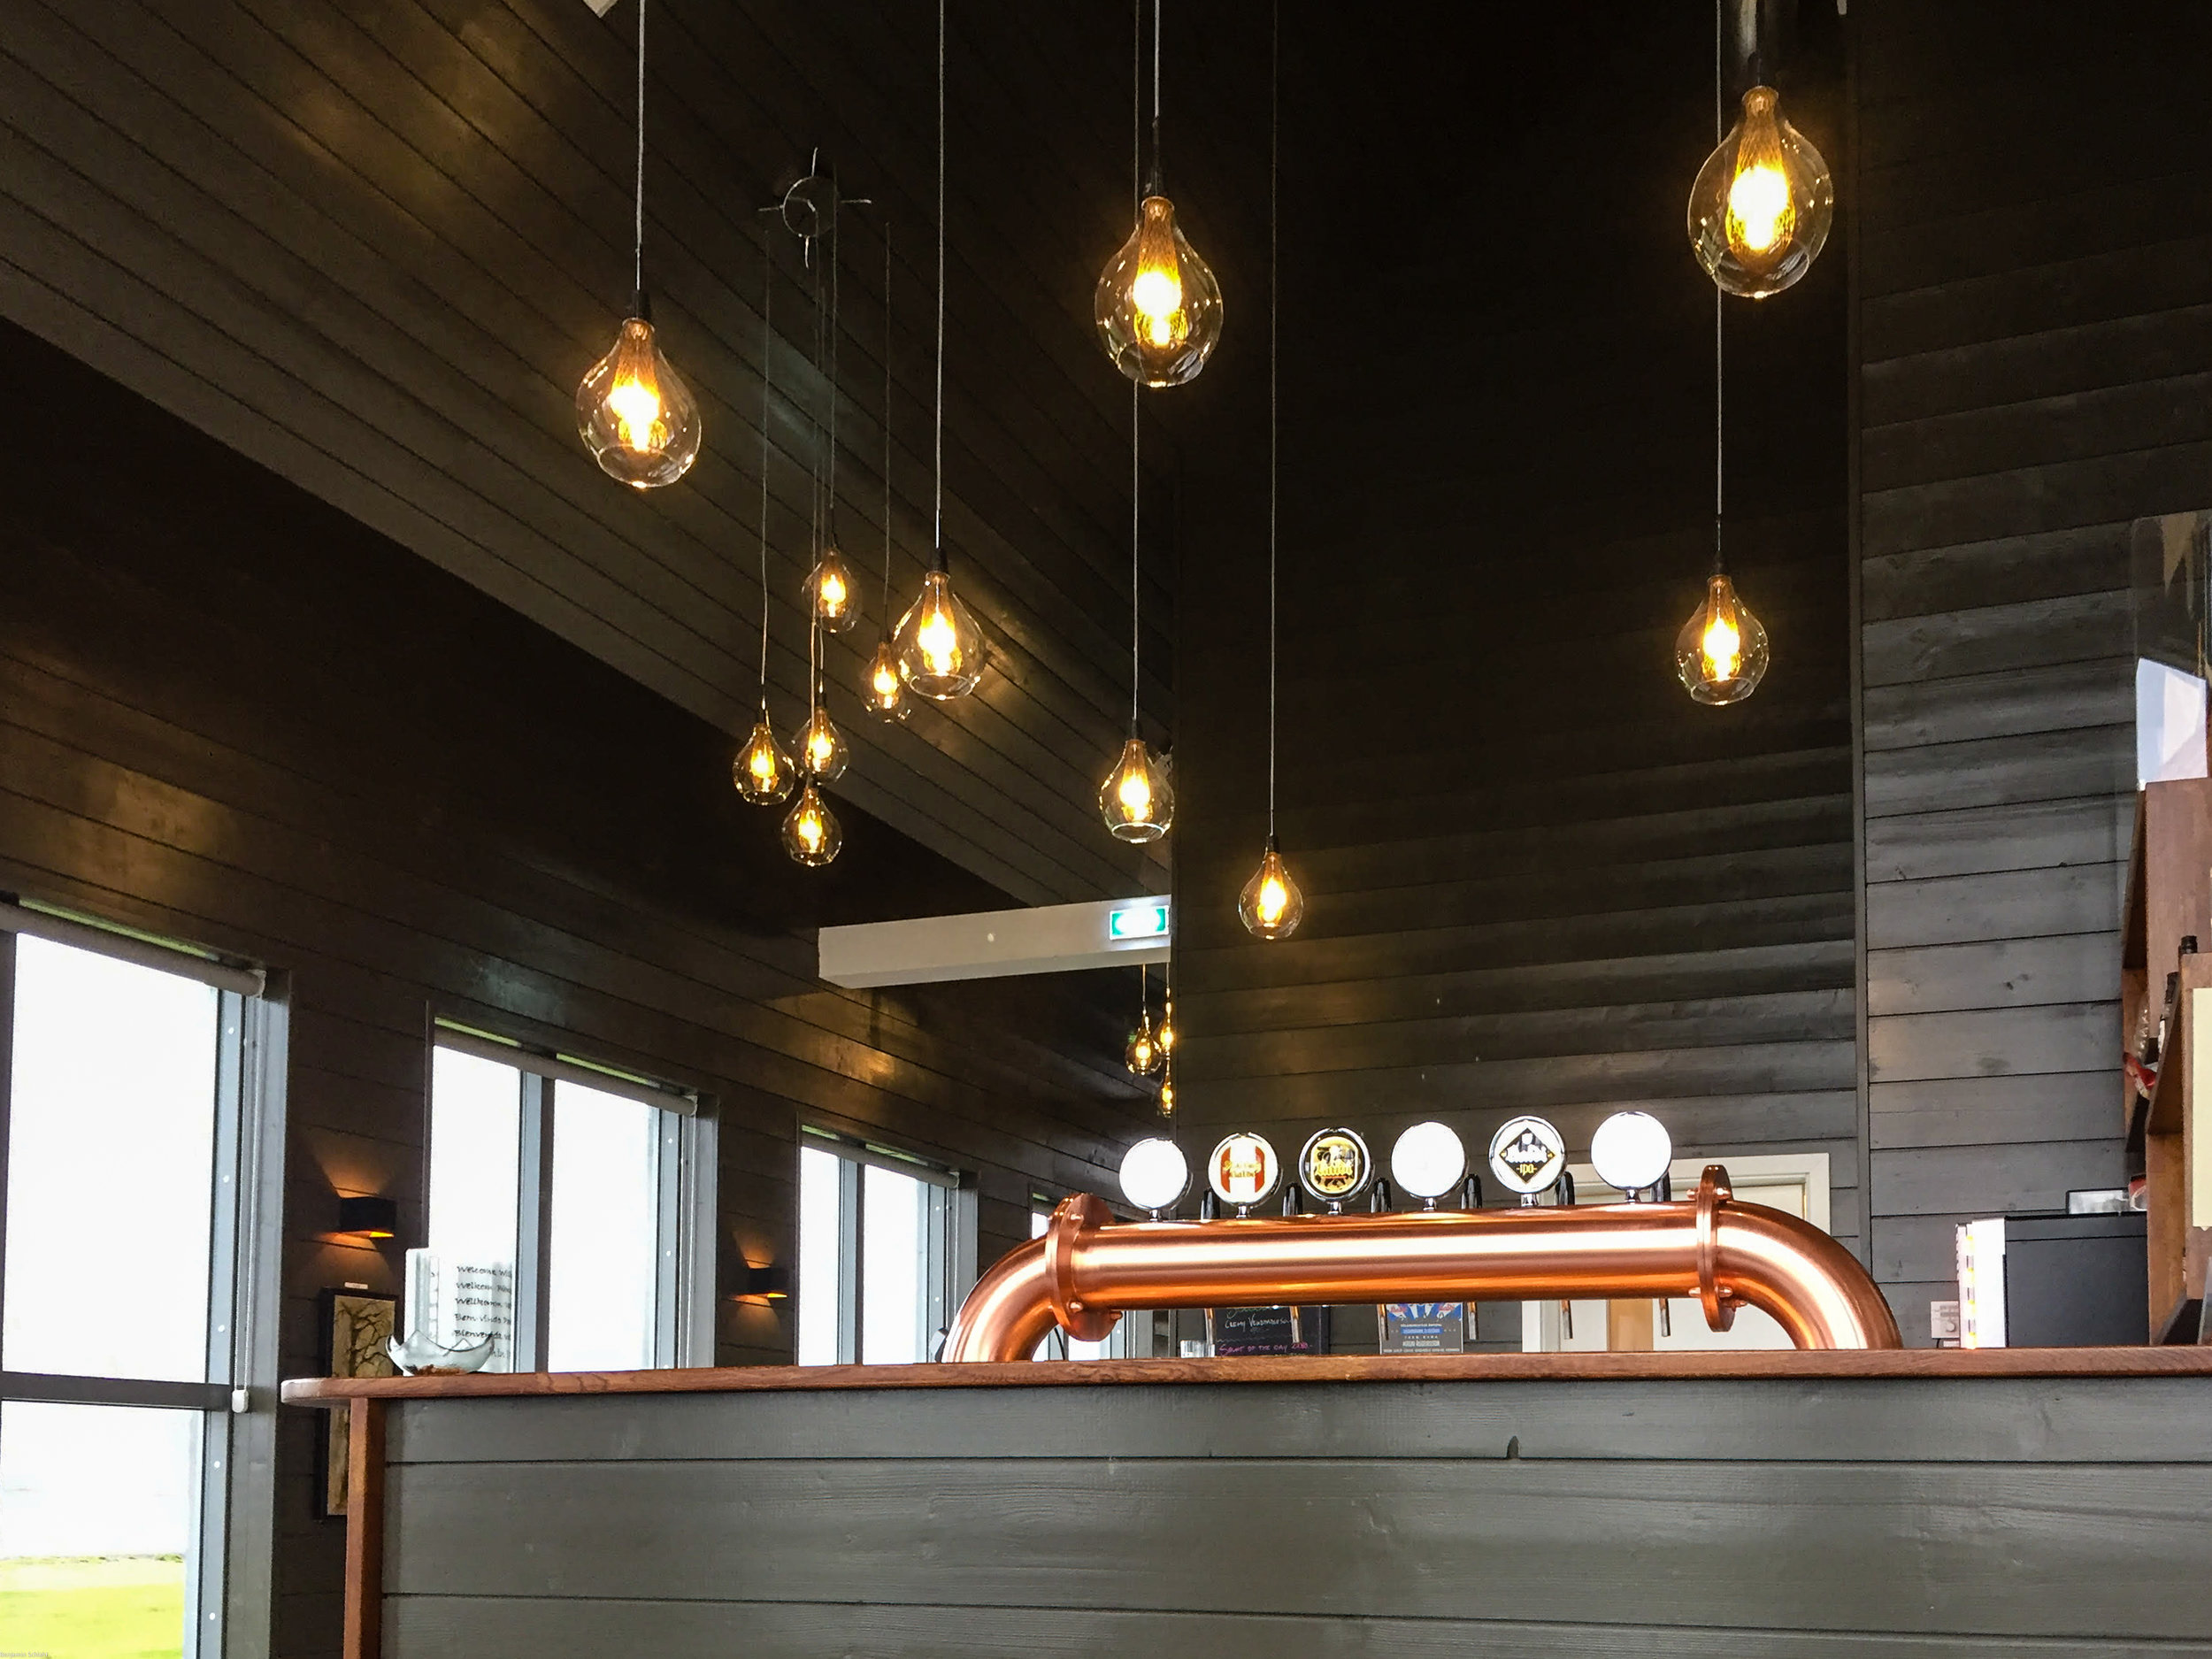 Tap room decor – we loved the minimalistic feel here